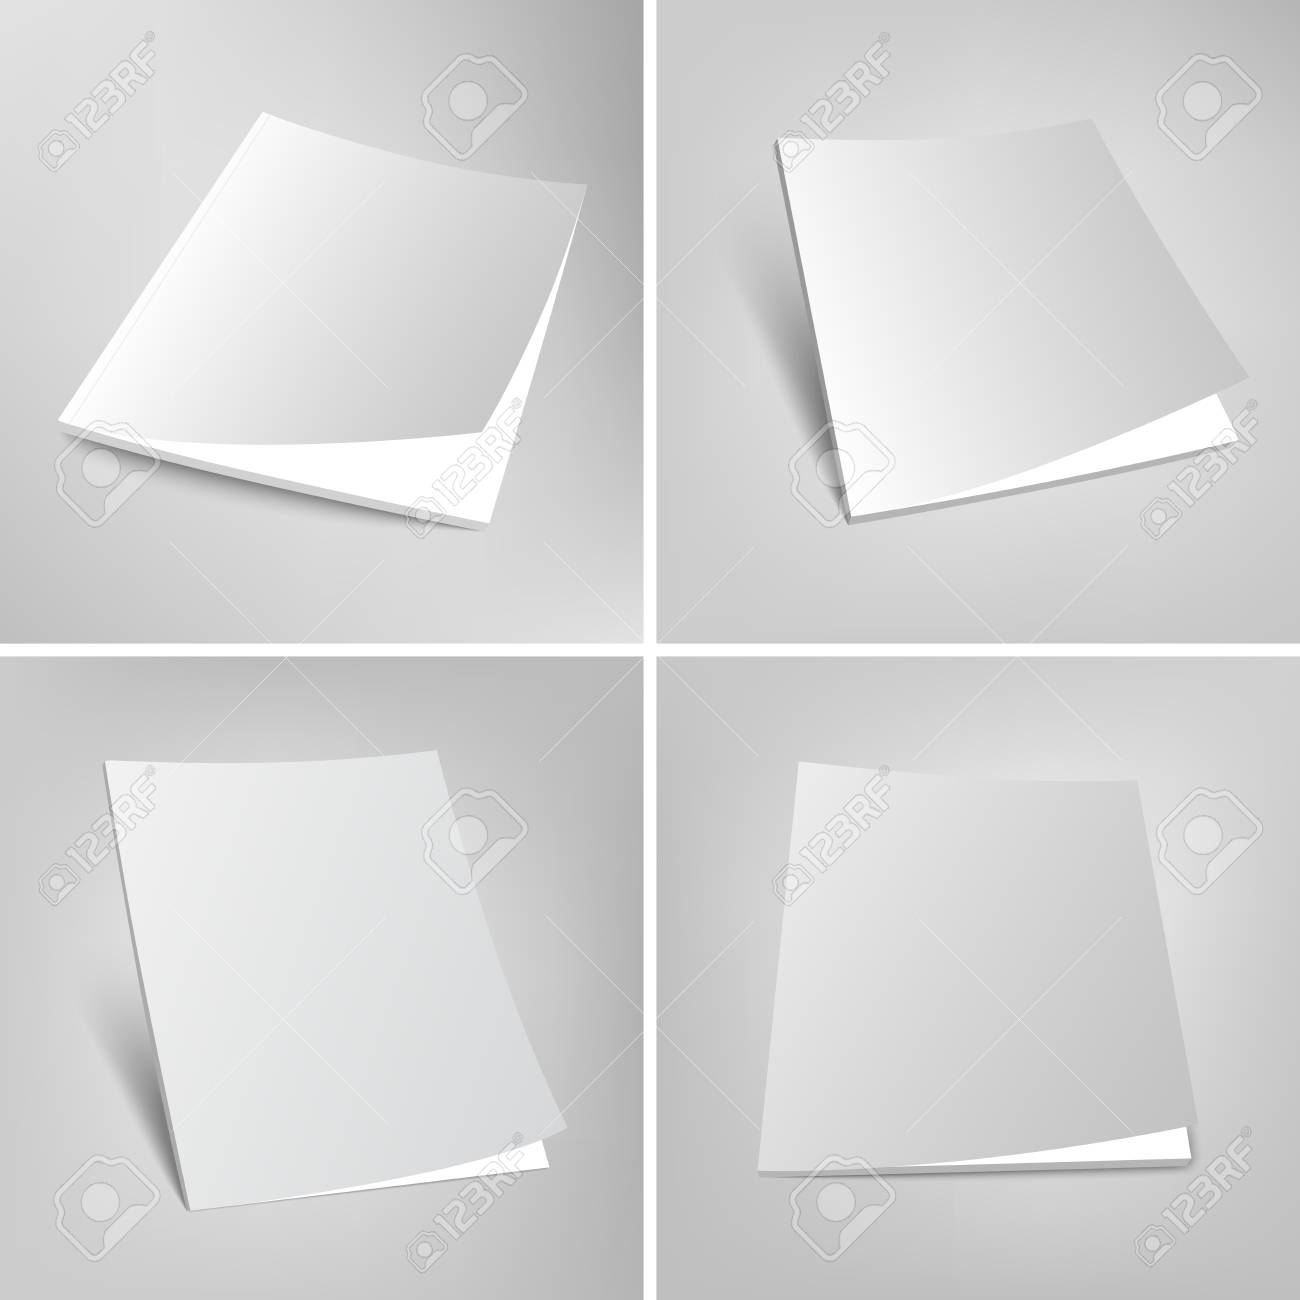 Blank Vector Illustration Of Magazines Set Of Empty Covers Template